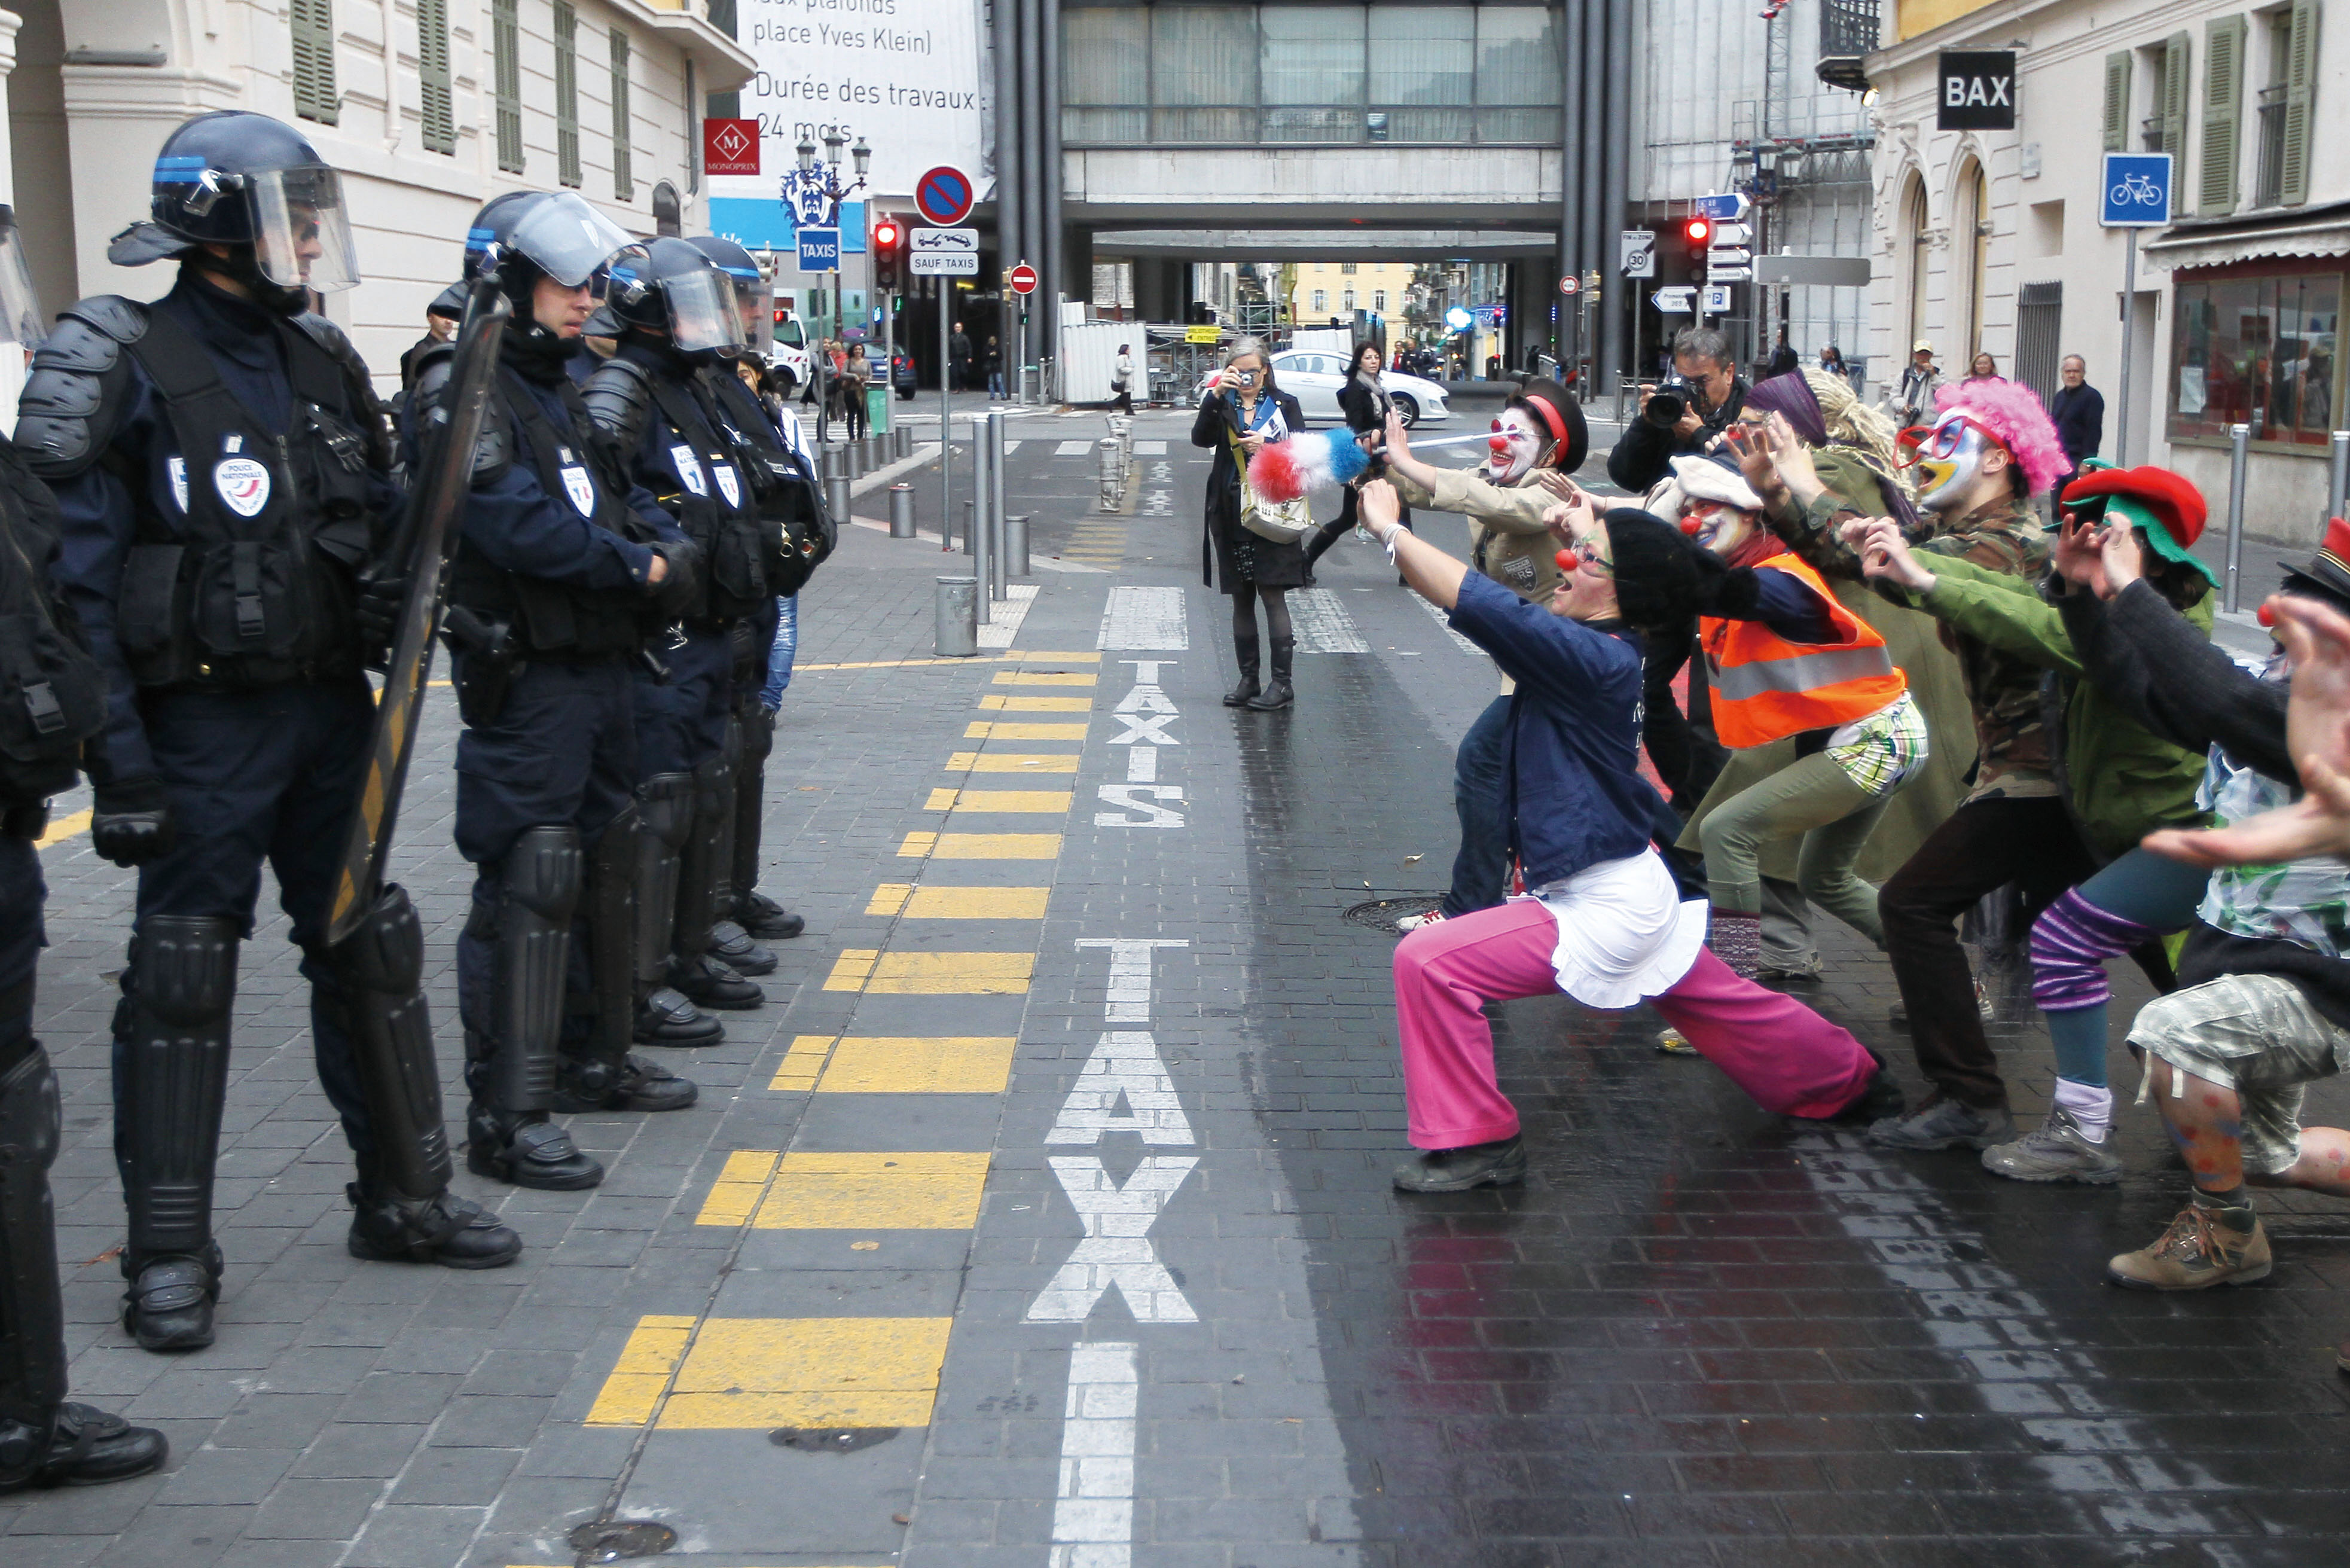 Demonstrators perform Kung Fu movements in front of policemen during a protest in Nice, on November 3, 2011. (Agence France-Presse)